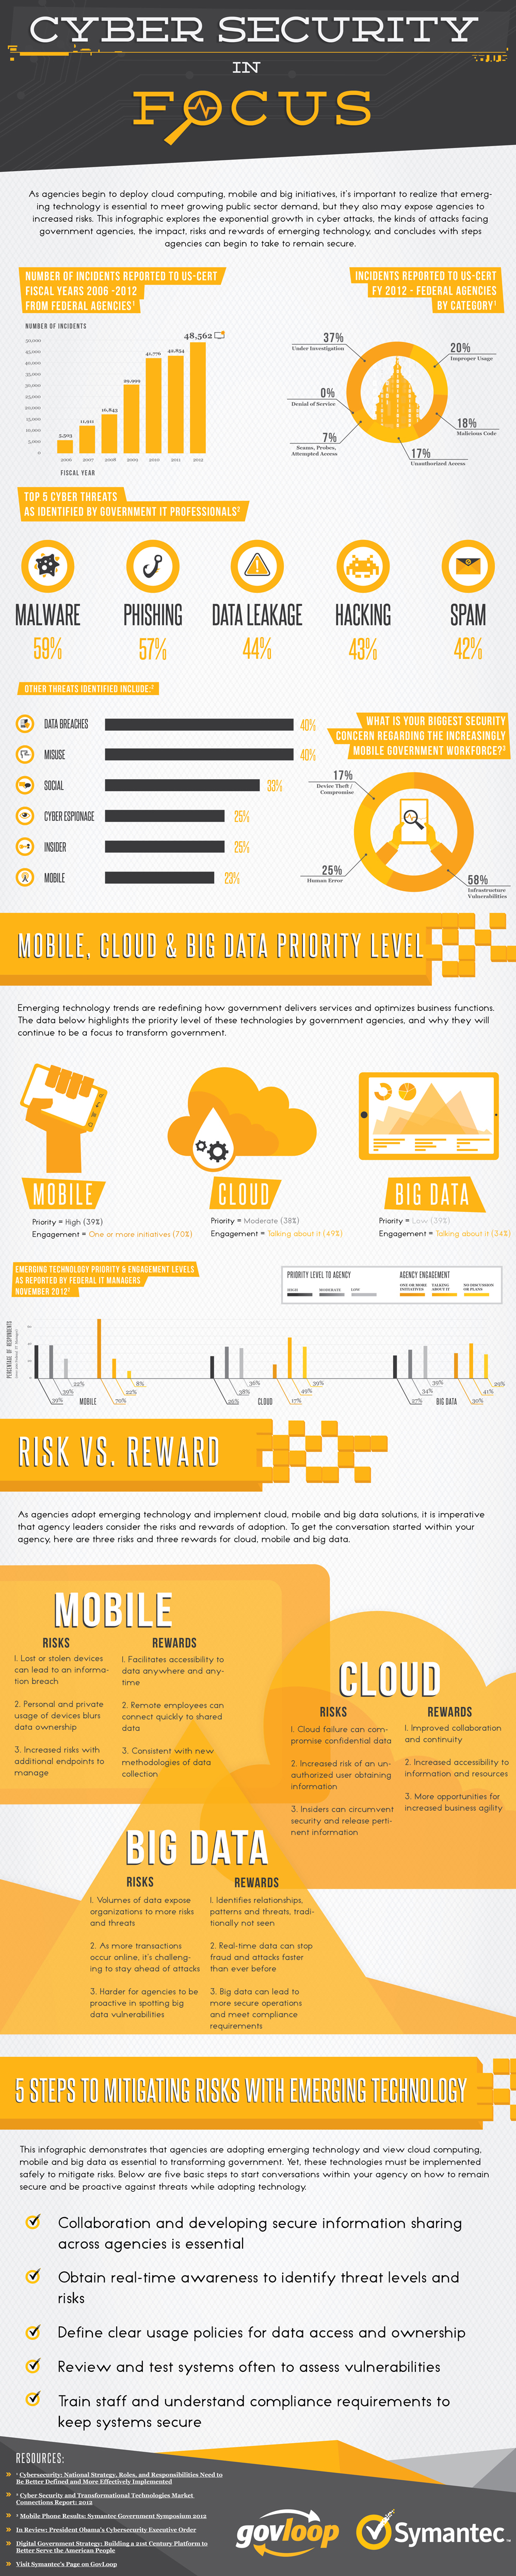 Cyber Security Steps To Mitigating Risks With Emerging Technology Data Threats